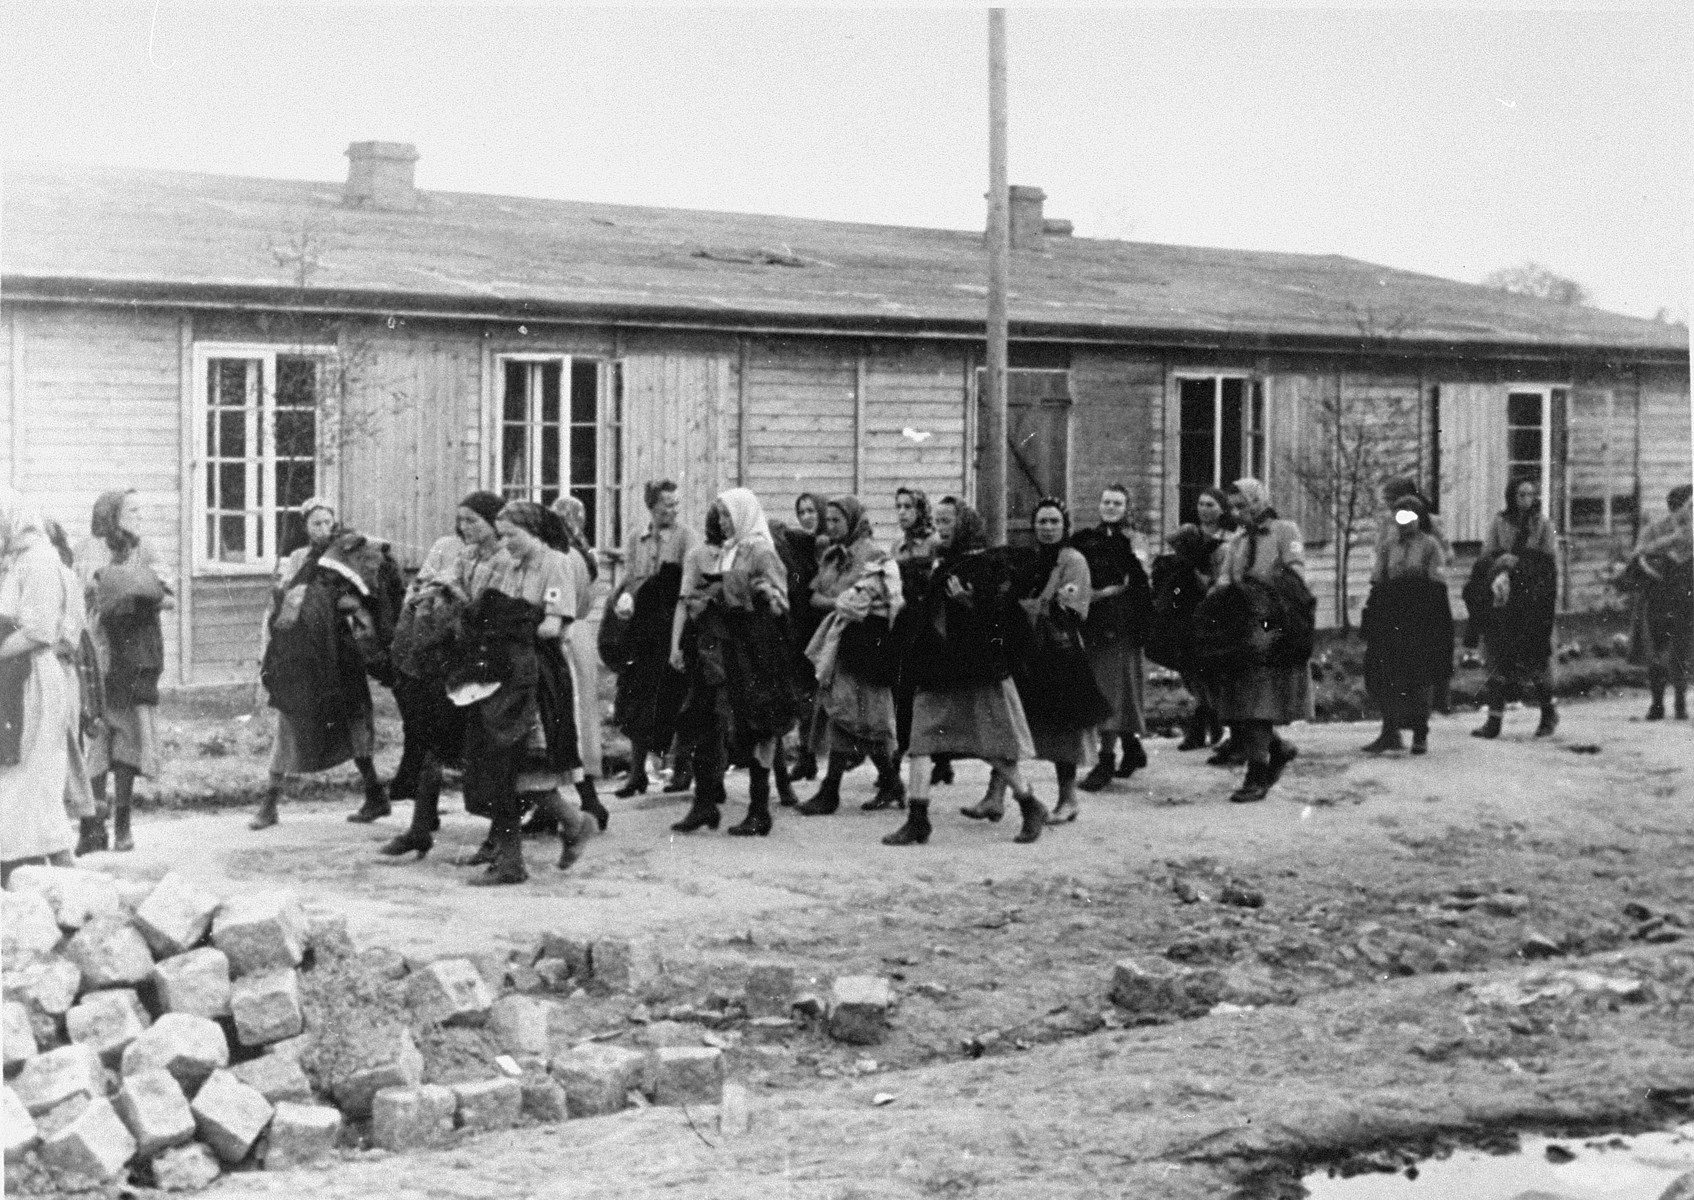 Jewish women from Subcarpathian Rus who have been selected for forced labor at Auschwitz-Birkenau, march toward their barracks after disinfection and headshaving.  According to Leo Cove, these women were on their way to pick up their bread rations. One of these women saved Mr. Cove's mother by pulling her from the line of women selected for death and sticking a loaf of bread in her hands.